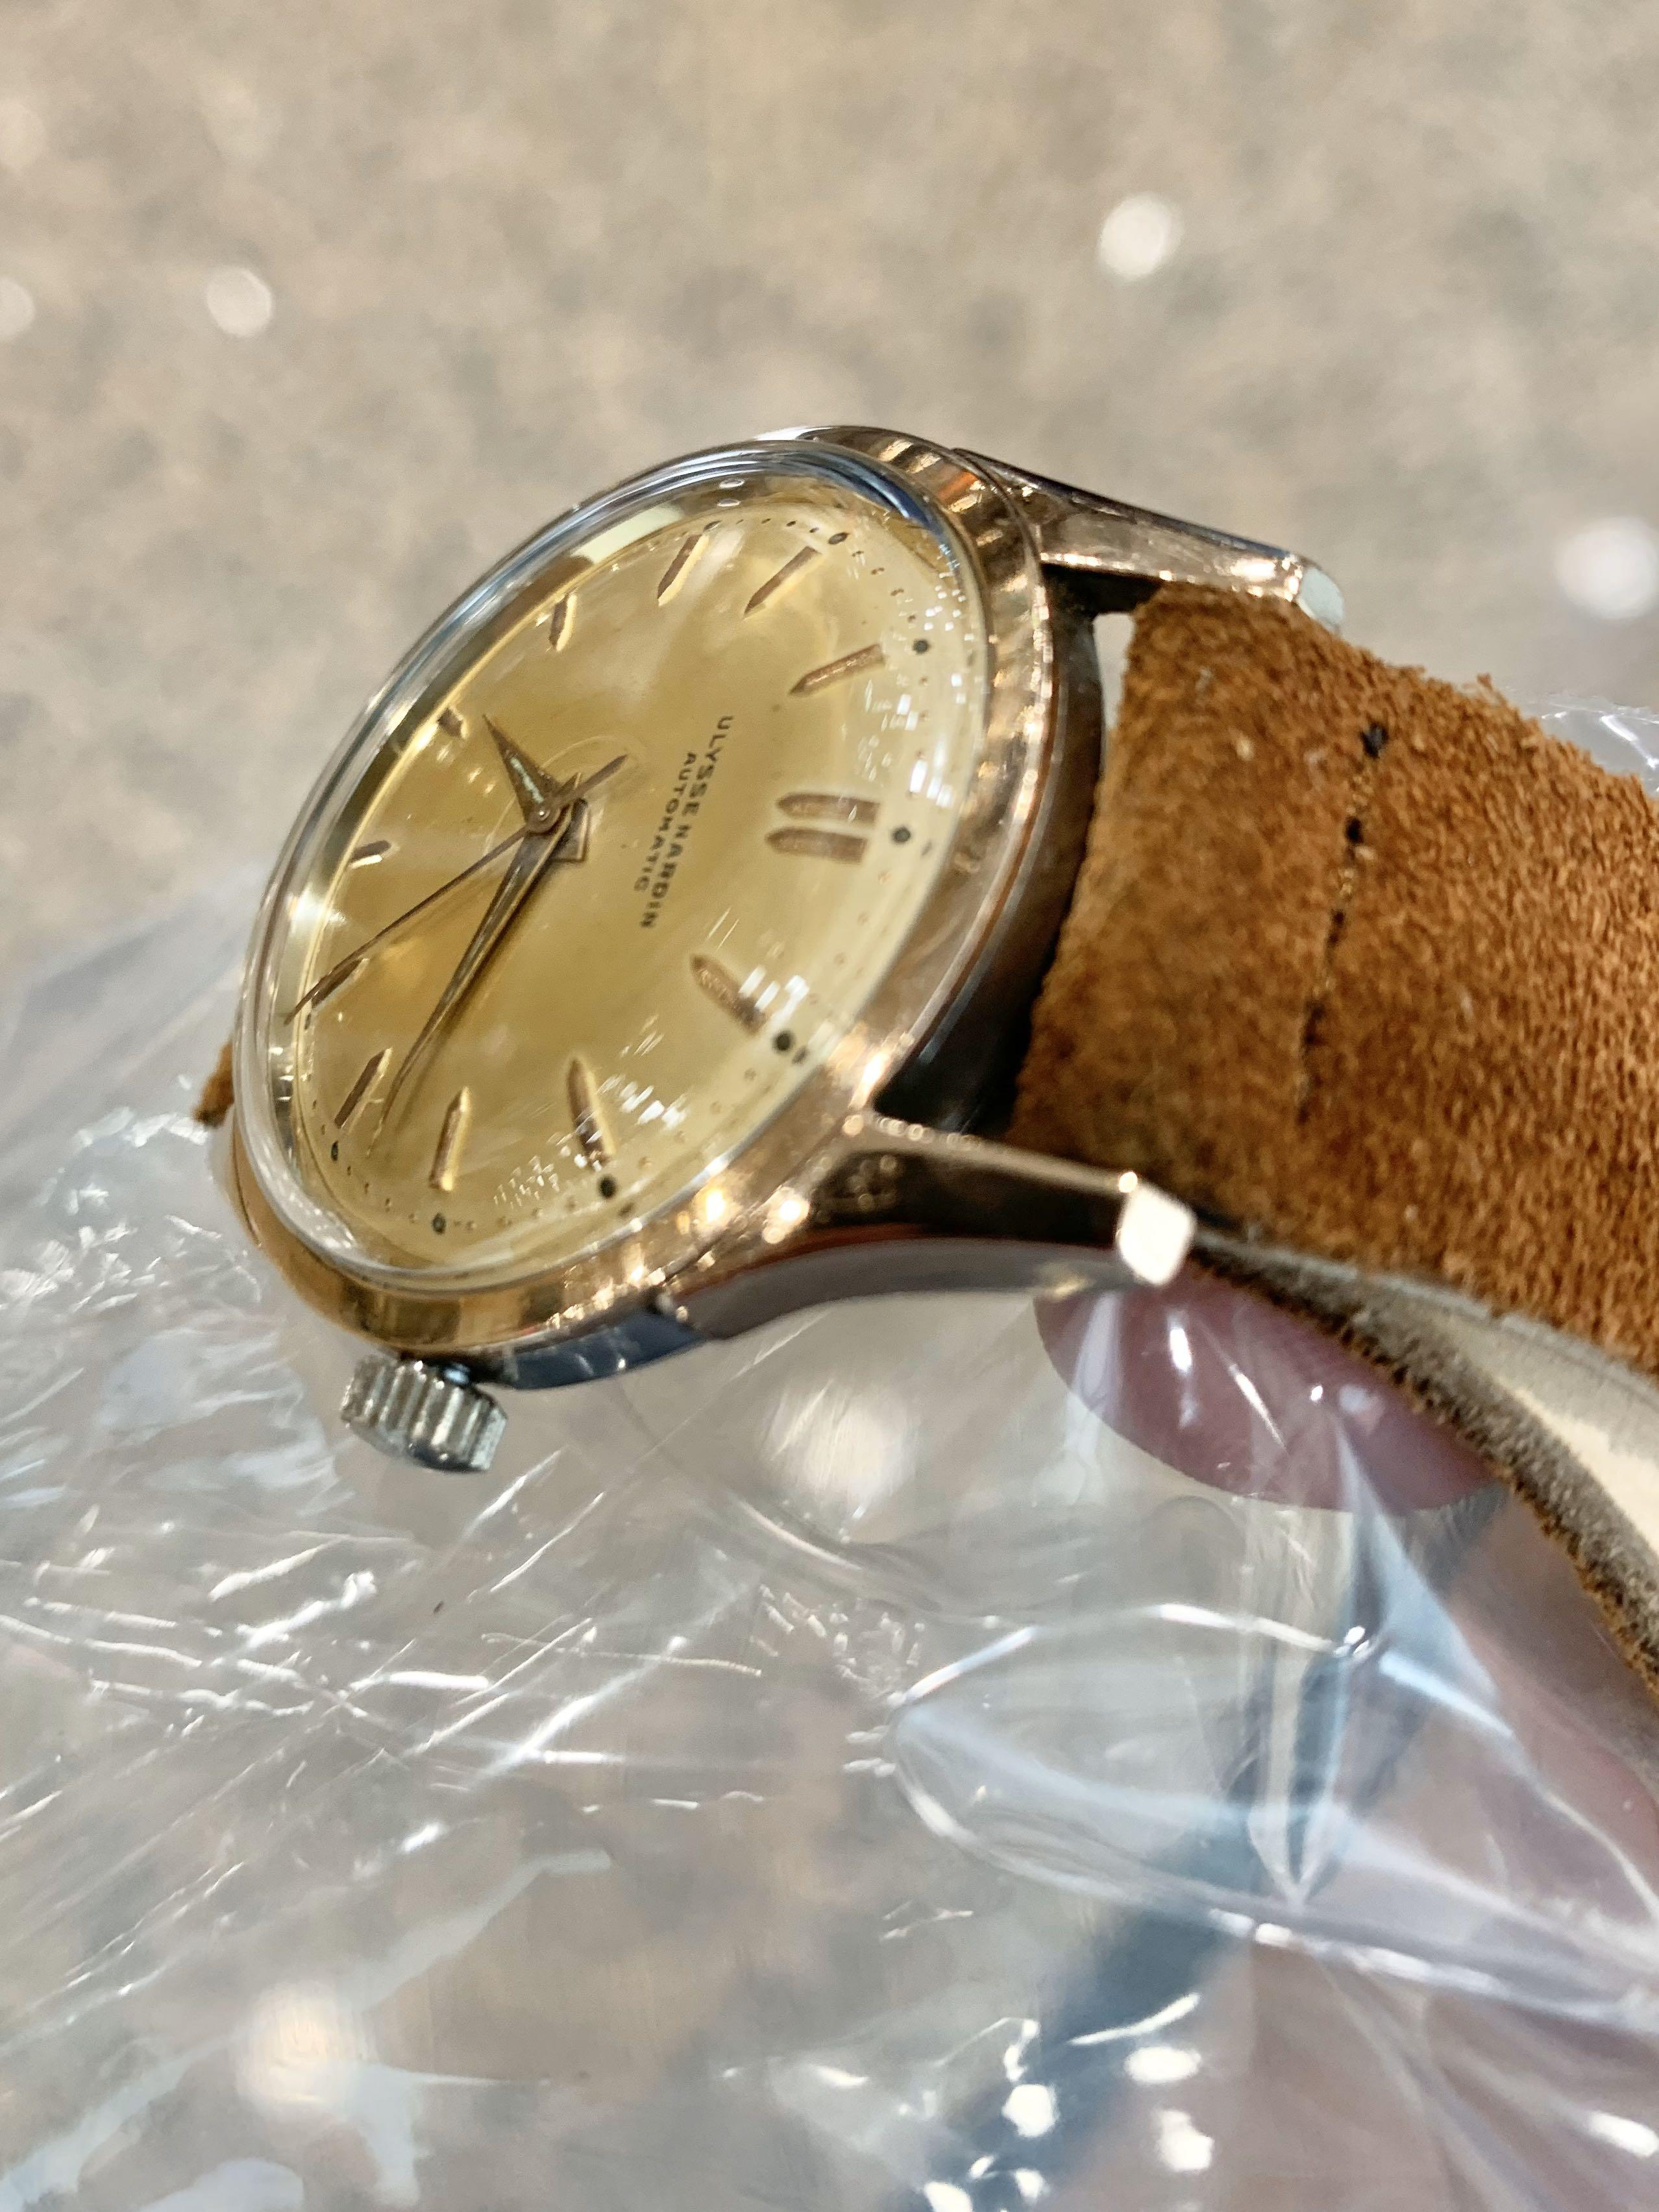 Authentic Ulysse Nardin Rose Gold Plated Lugs Stainless  Steel sides 36mm diameter Champagne Dial with box (good size for both ladies and men) (with original UN box, leather pouch, cloth, tool,5 expensive straps, 2 RG buckle)43mm lug-to-lug. Rare!🤩